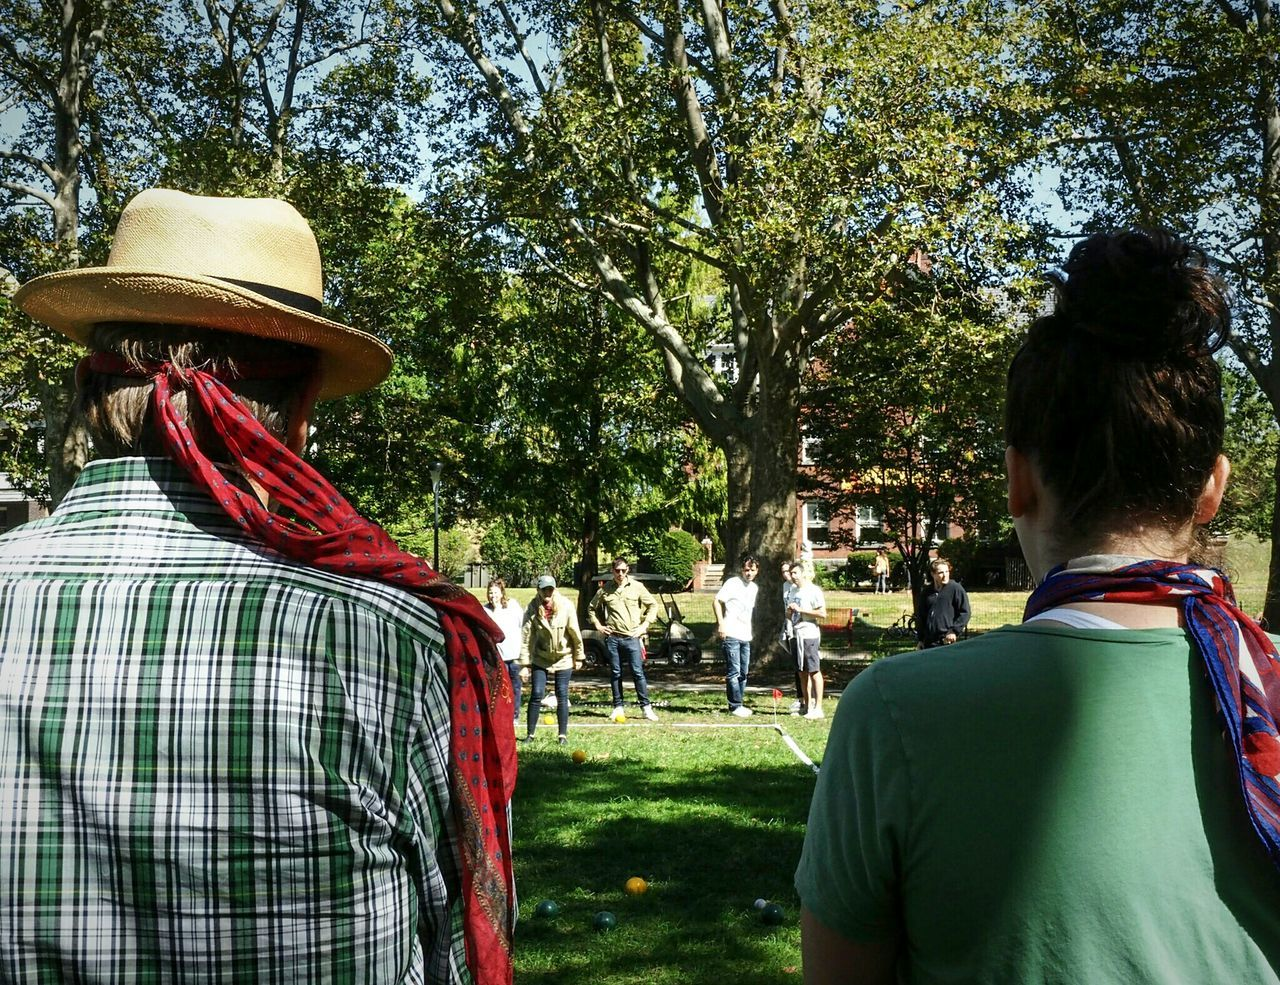 Bocci tournament EyeEmonGI Tree Person Outdoors Day Lensculture Nusevoice NYC Photography Peopleofnyc Color Photography People Watching Calminthechaos Governorsisland Streetphotography Competition Playing Leisure Activity Travel Destinations Everybodystreet Close-up People And Places